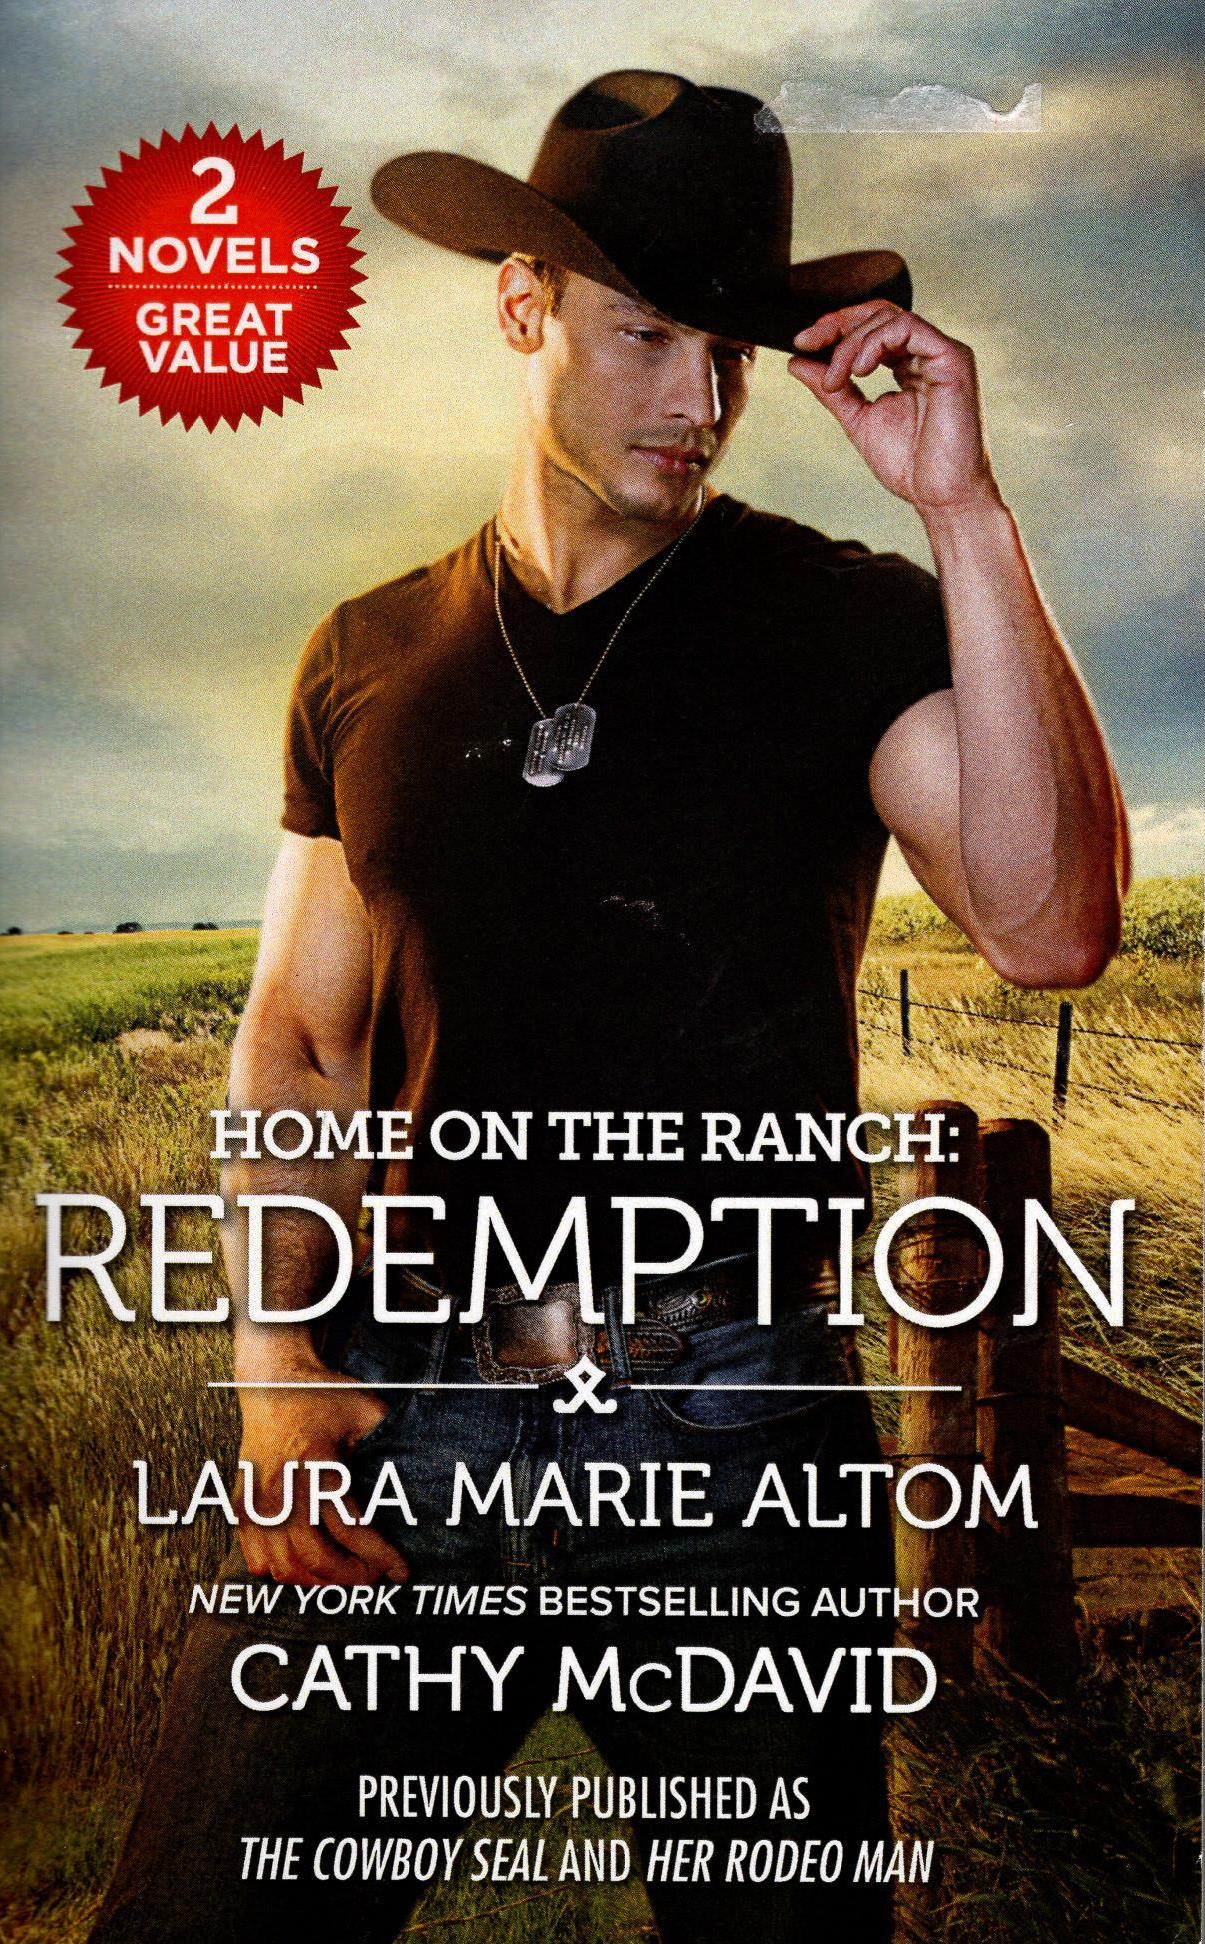 Image for HOME ON THE RANCH:REDEMPTION: THE COWBOY SEAL HER RODEO MAN (REVISED)